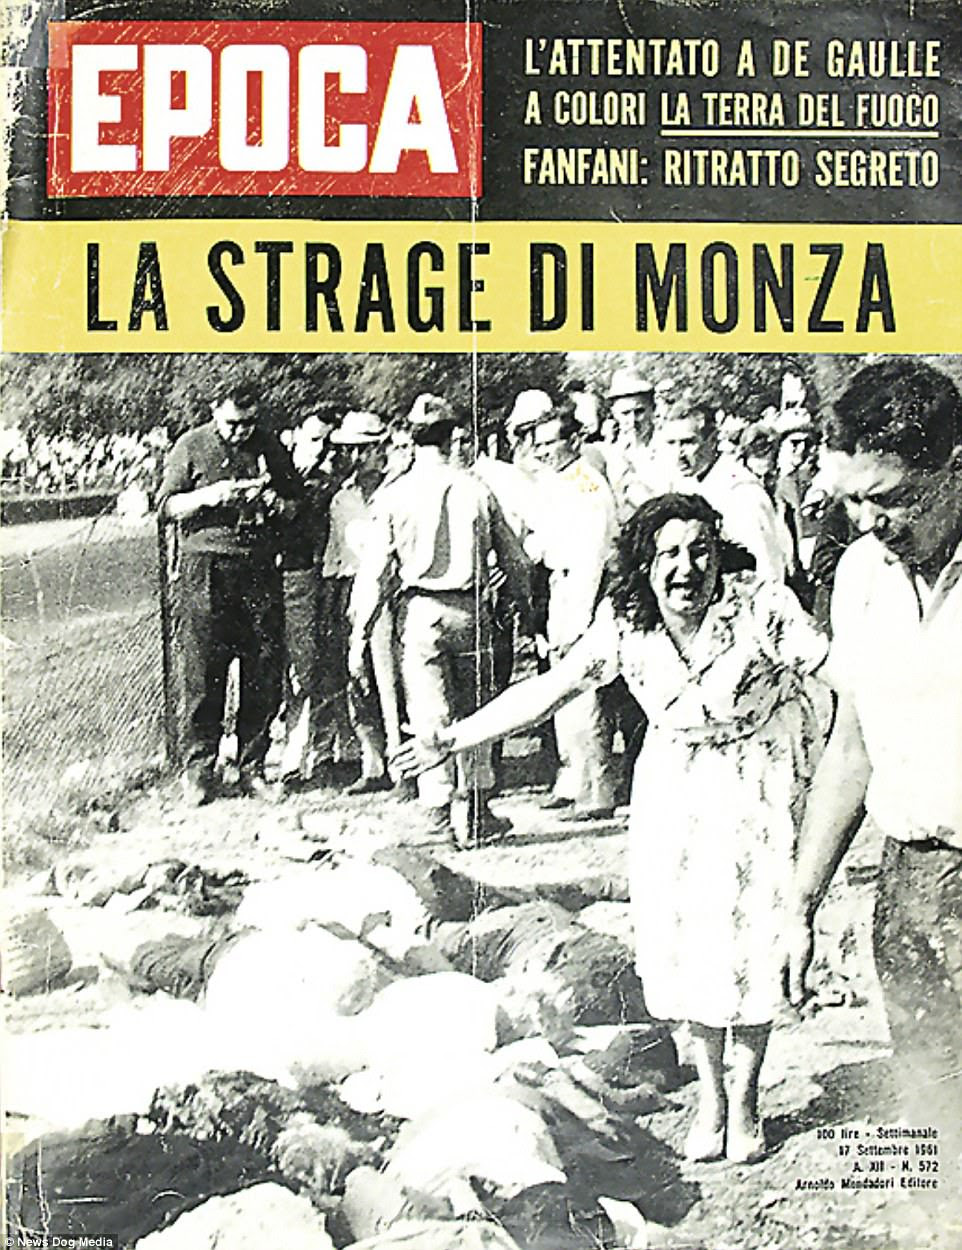 If the image of Von Trips' lifeless body lying on the race track isn't horrific enough, the image of an Italian woman standing in hysteria over the bodies of some of the 15 spectators that also perished is simply incomprehensible by today's standards